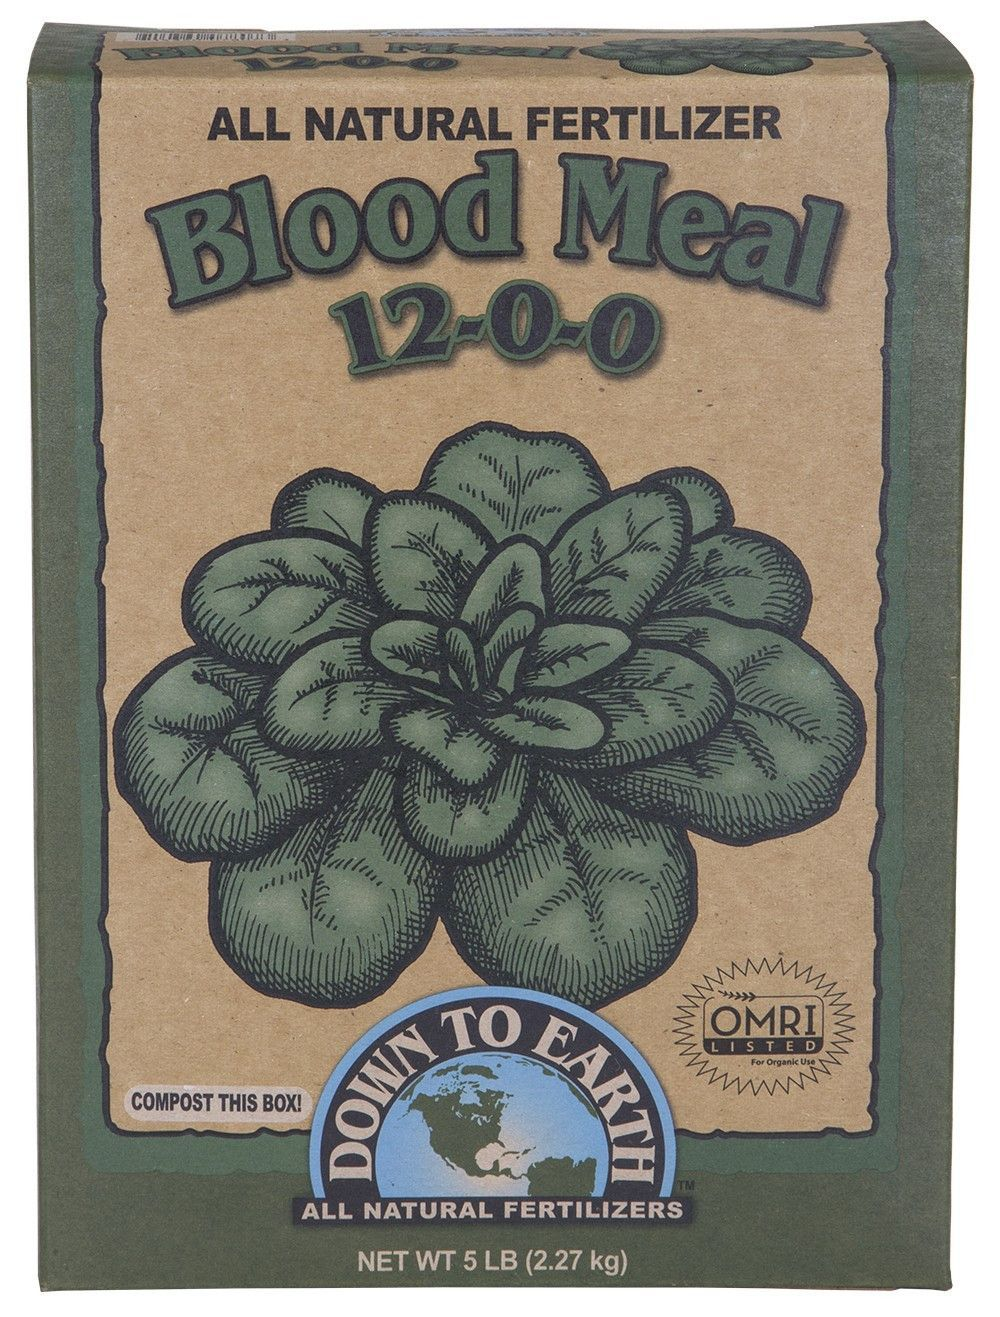 Down To Earth Blood Meal 12-0-0, 5 Pounds